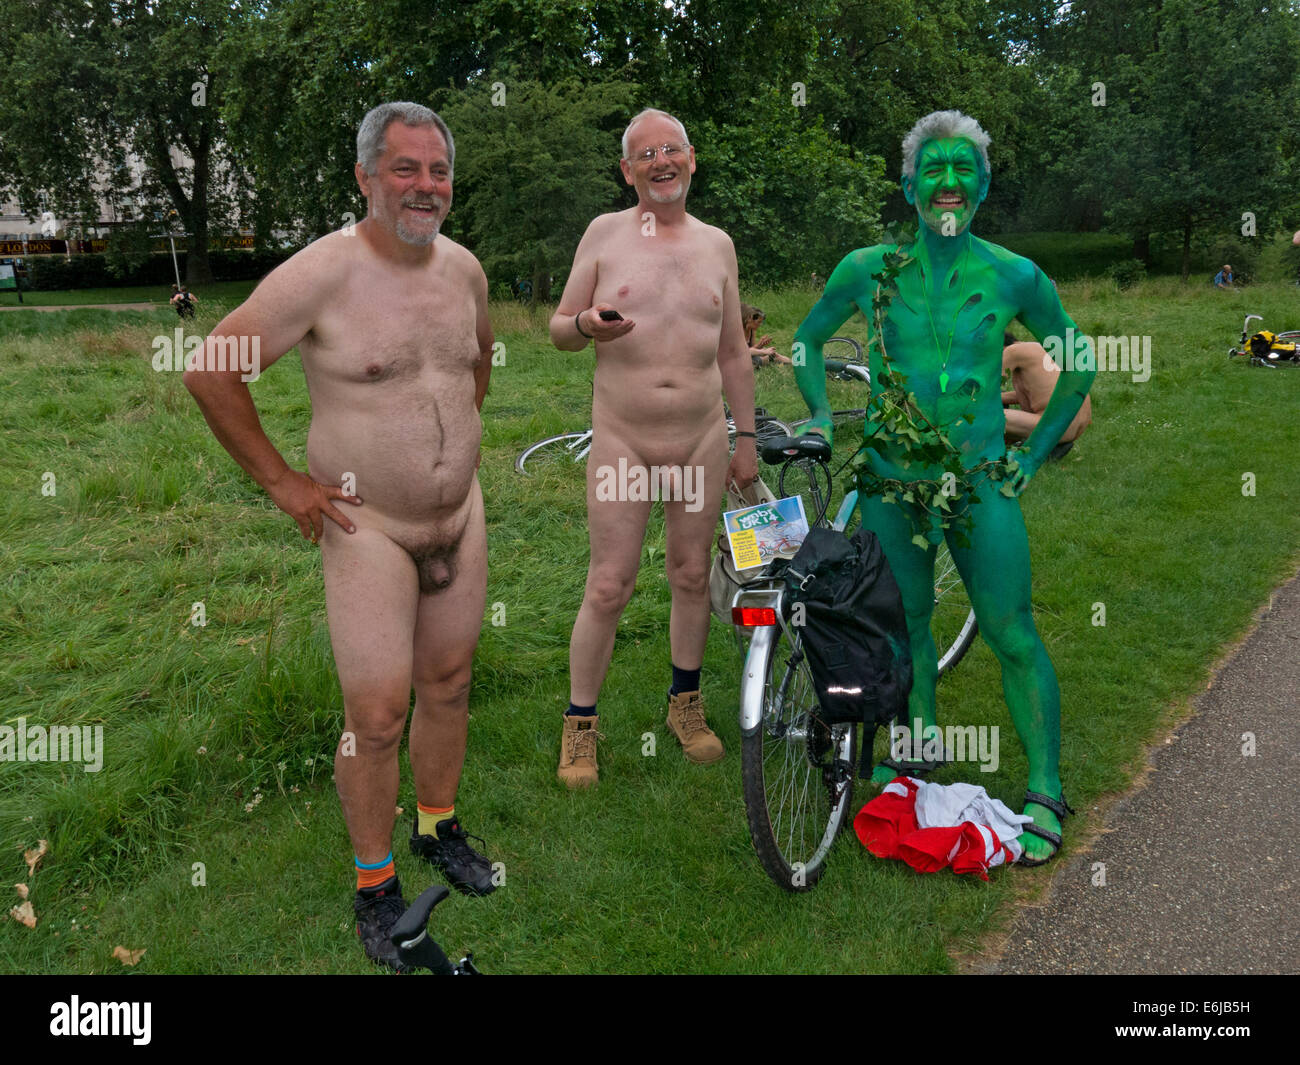 demo,UK,A,demonstration,united,kingdom,naked,people,eccentric,eccentrics,wierd,strange,folk,ride,rider,odd,demonstrator,demonstrating,green,party,issue,issues,Hyde,HydePark,World,Naked,Bike,Ride,regents,get,your,kit,off,full,nudity,on,show,protest,against,oil,dependency,and,the,way,the,of,the,gotonysmith,riders,cycle,bare,as,car,automobile,three,greenman,green,man,penis,out,penises,dick,dicks,dickheads,elderly,old,bums,rush